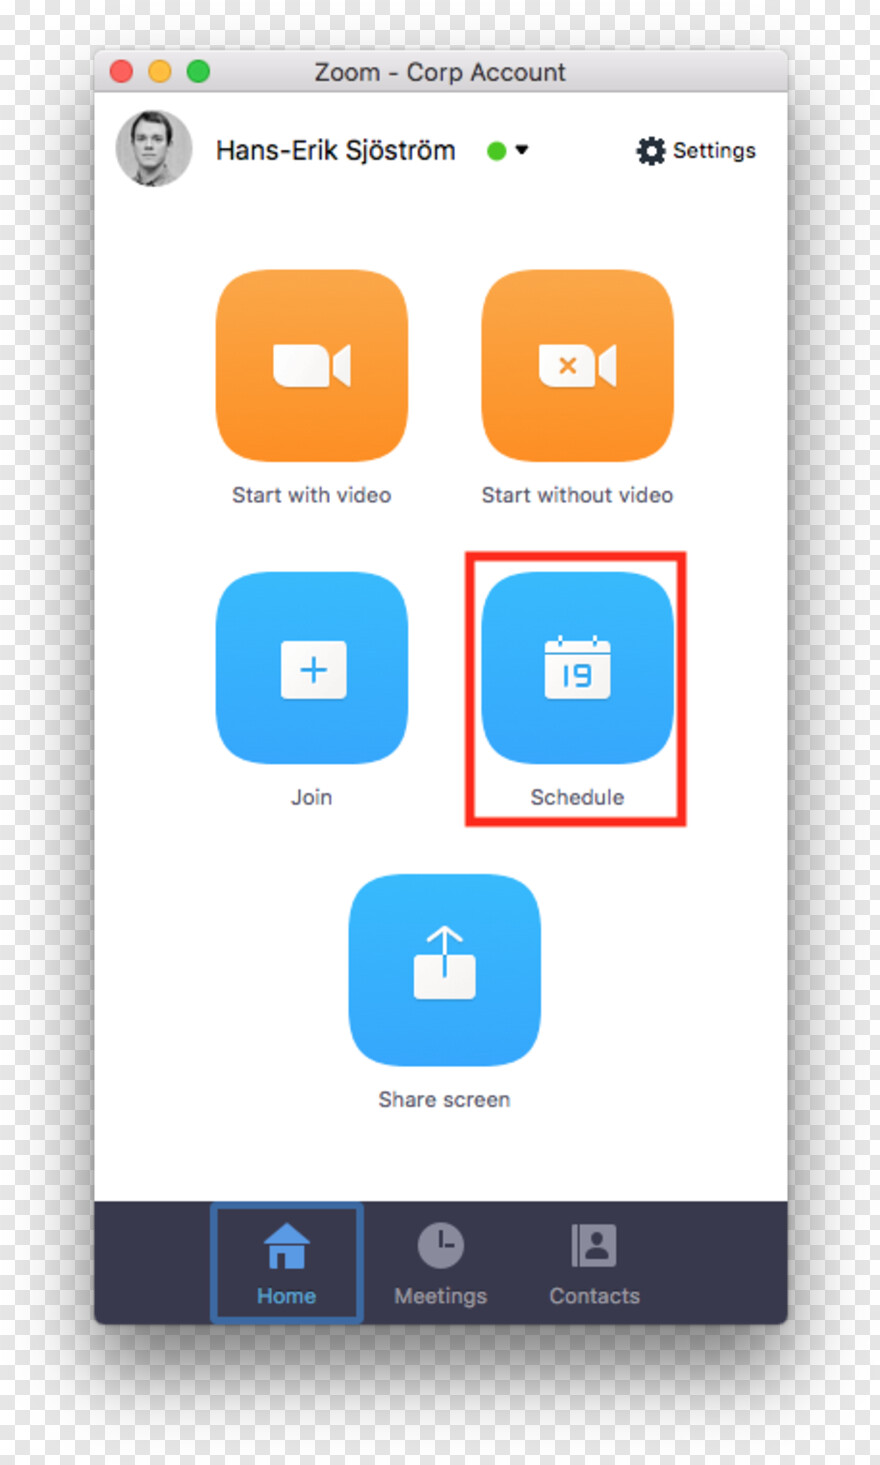 Meeting Icon - Zoom Application, HD Png Download@pngjoy.com